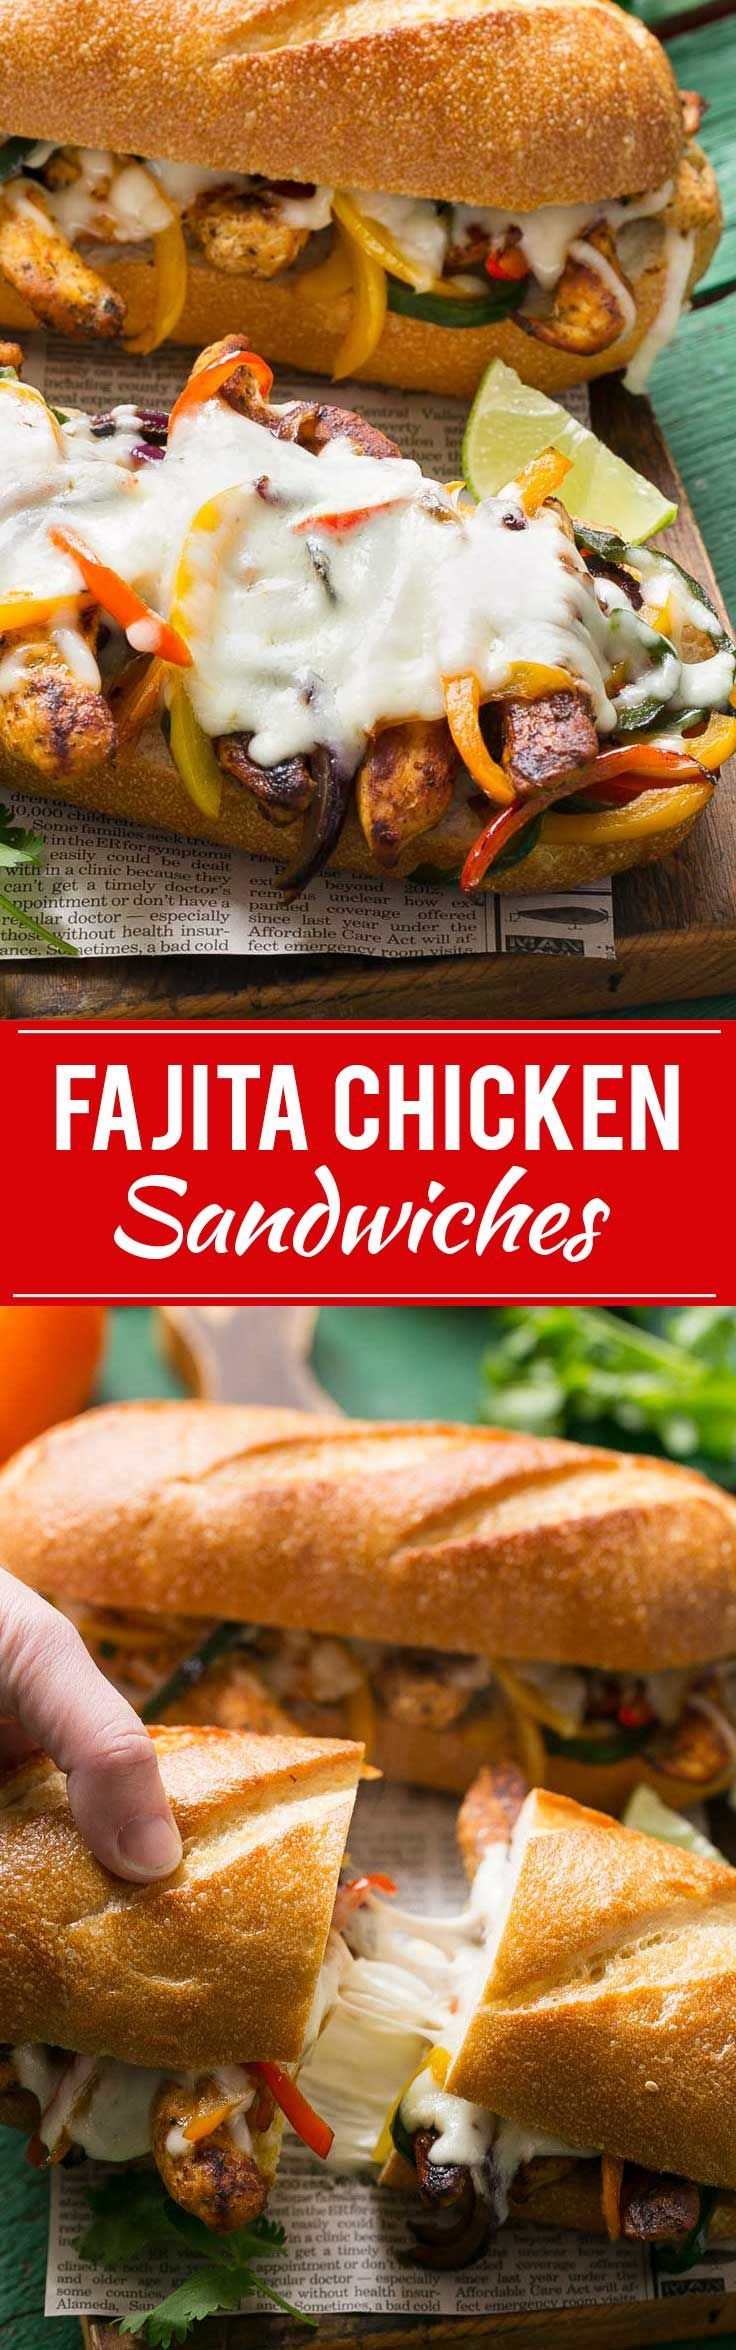 These fajita chicken cheesesteak sandwiches are full of spiced chicken, peppers and lots of cheese, all on a toasted roll. SauteReady AD @fosterfarms